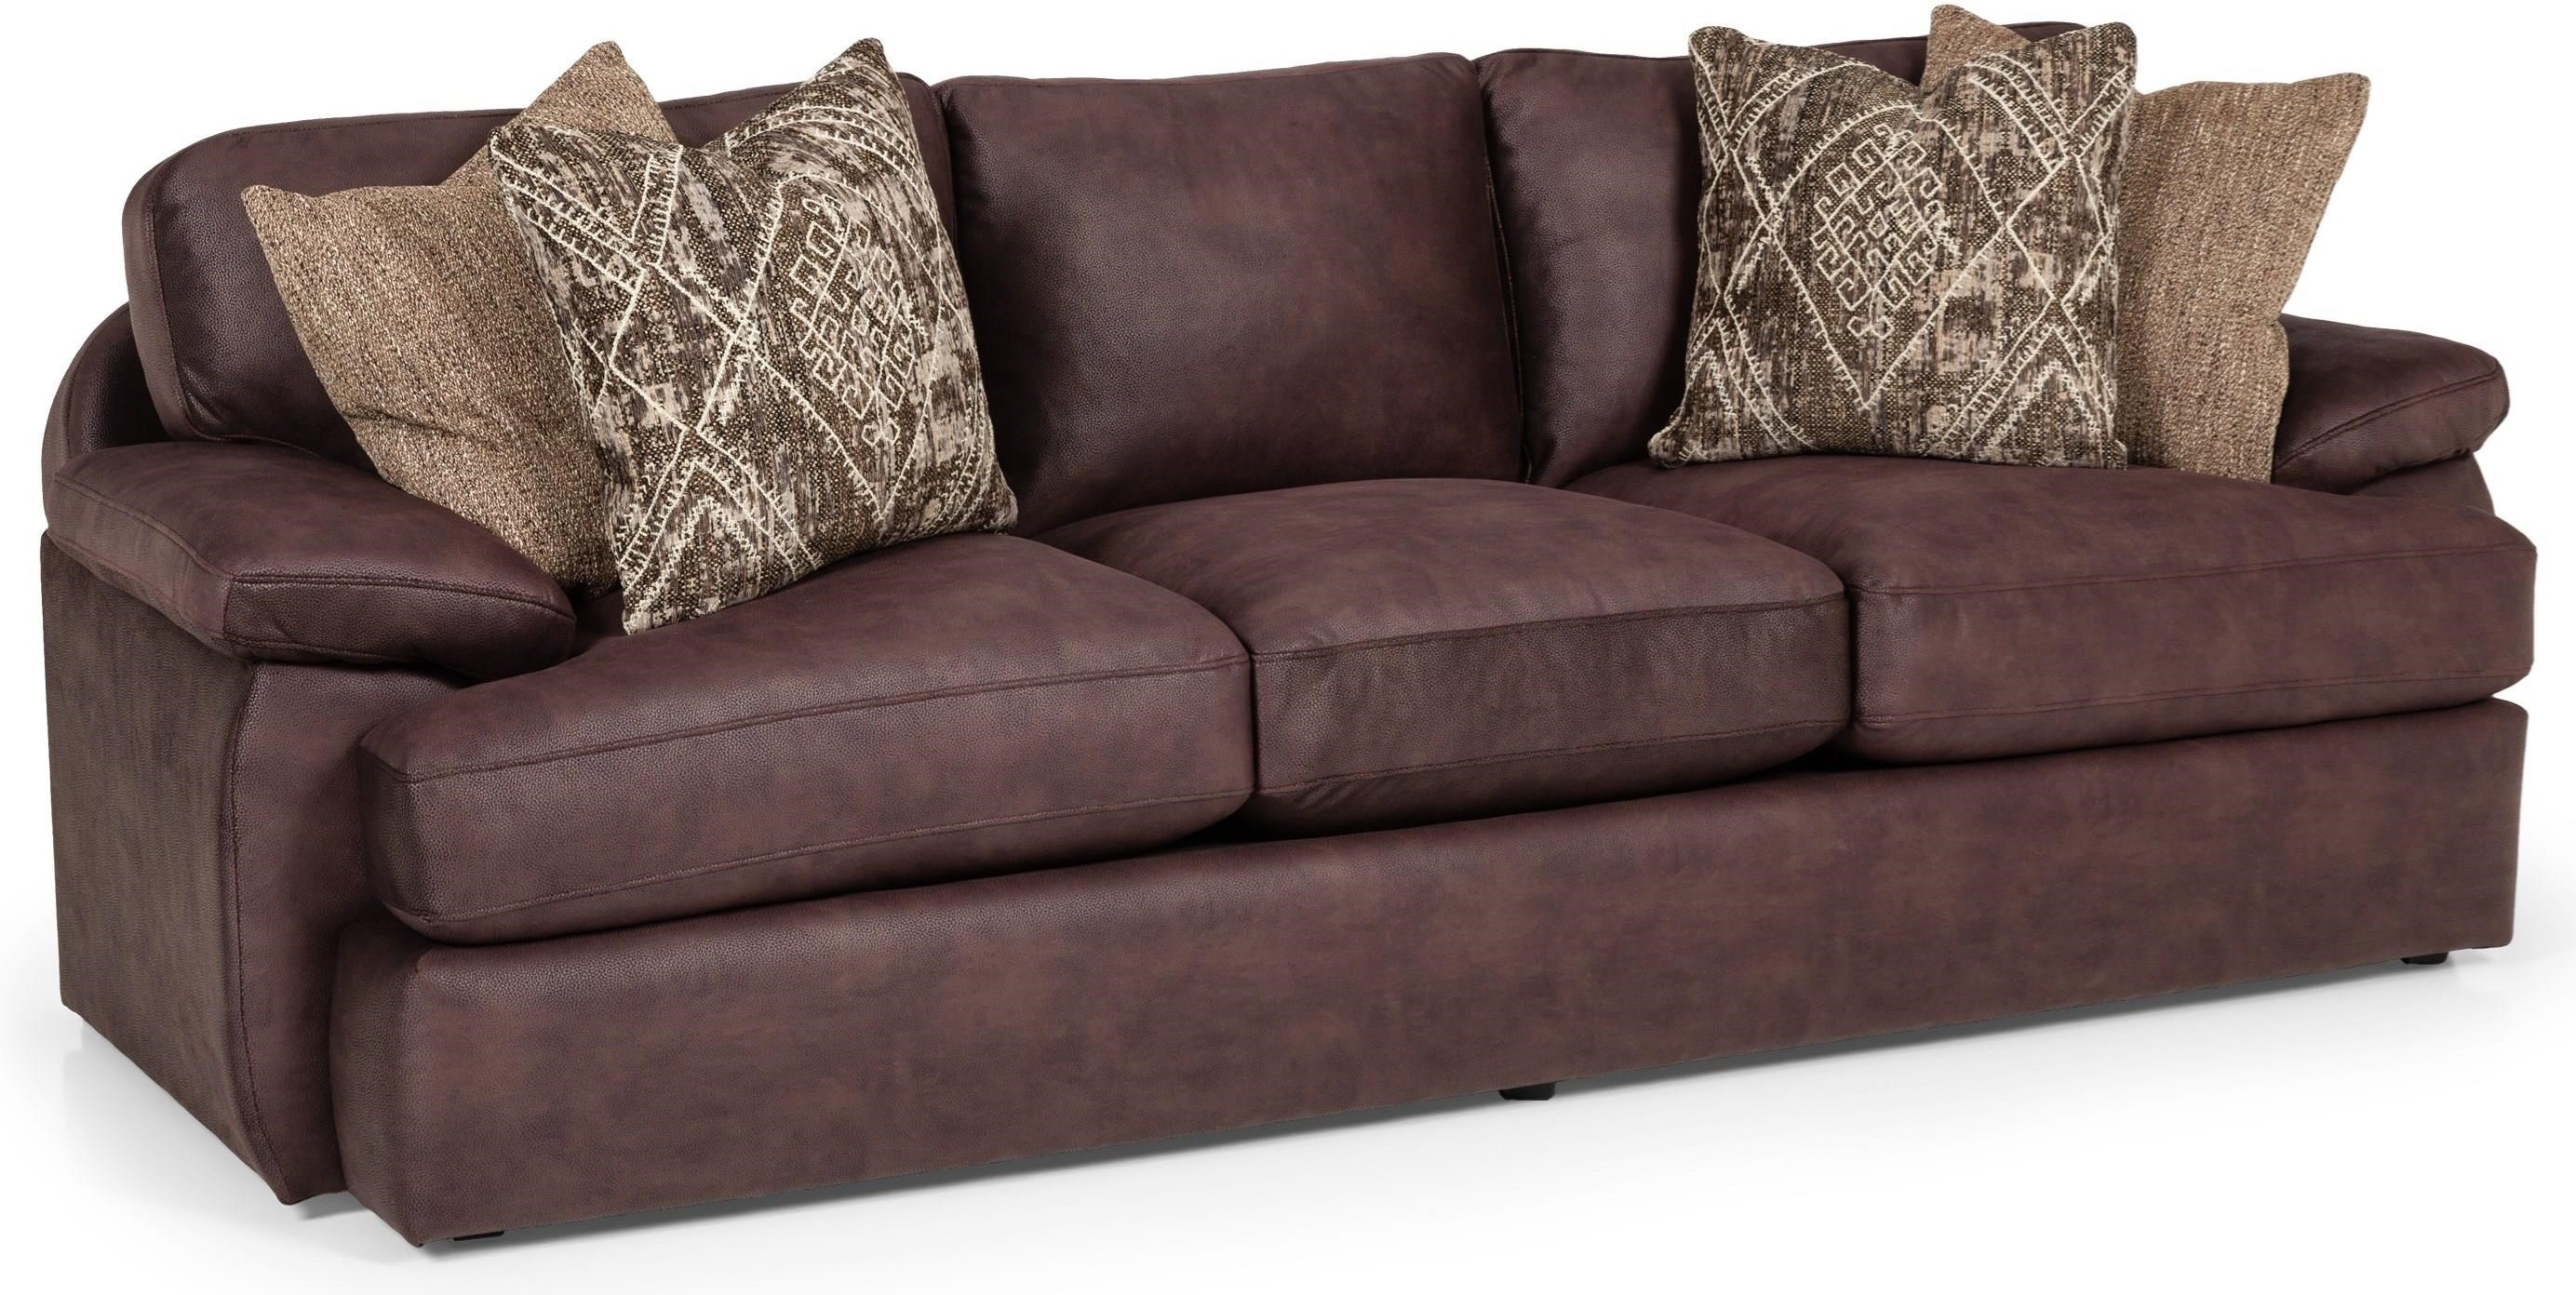 Stanton 386 Casual Sofa With Pillow Arms